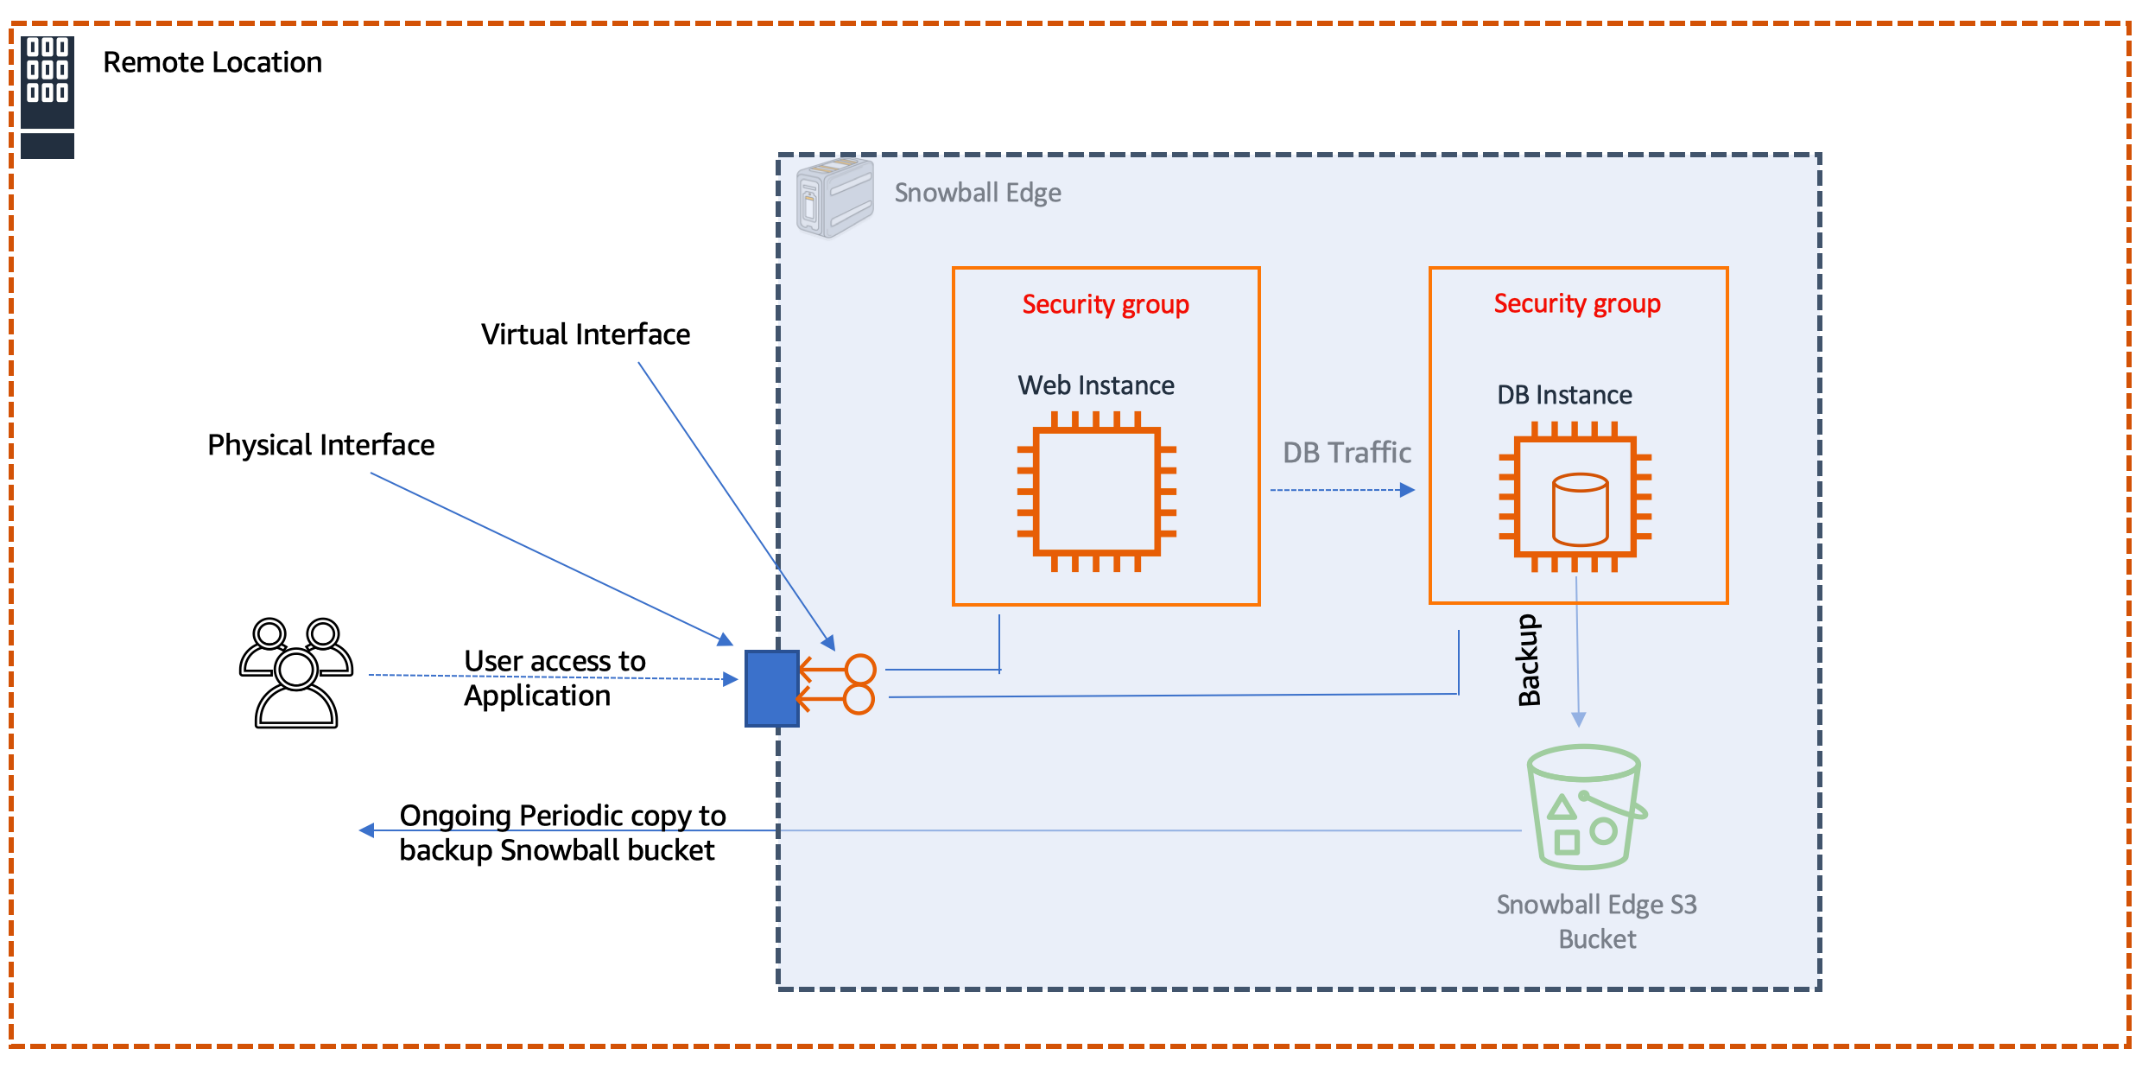 Diagram depicts the overall architecture of the deployment - Snowball Edge runs a web server and a database server.